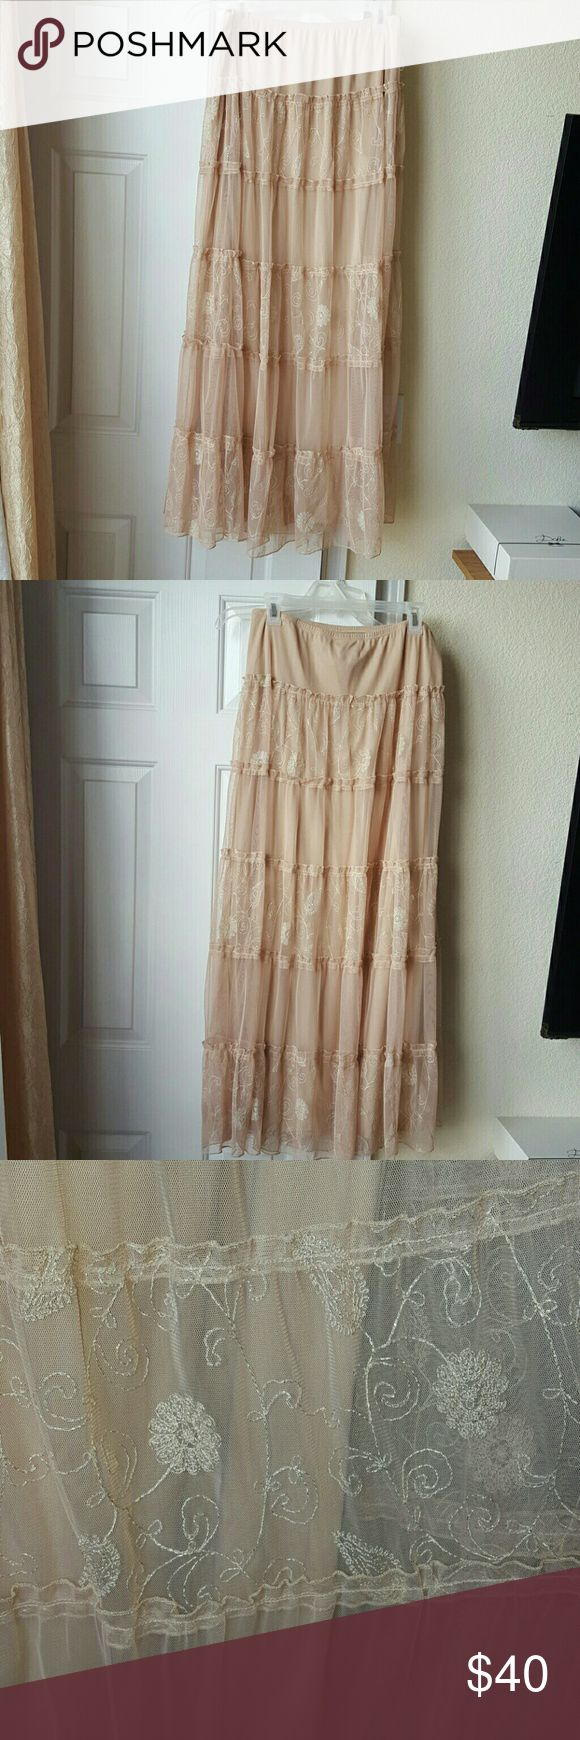 Heart Moon Star Maxi Skirt Small Gorgeous beige maxi skirt with gold embroidery! Worn once and there is a small snag in the lining as pictured but no other wear. heart moon star Skirts Maxi